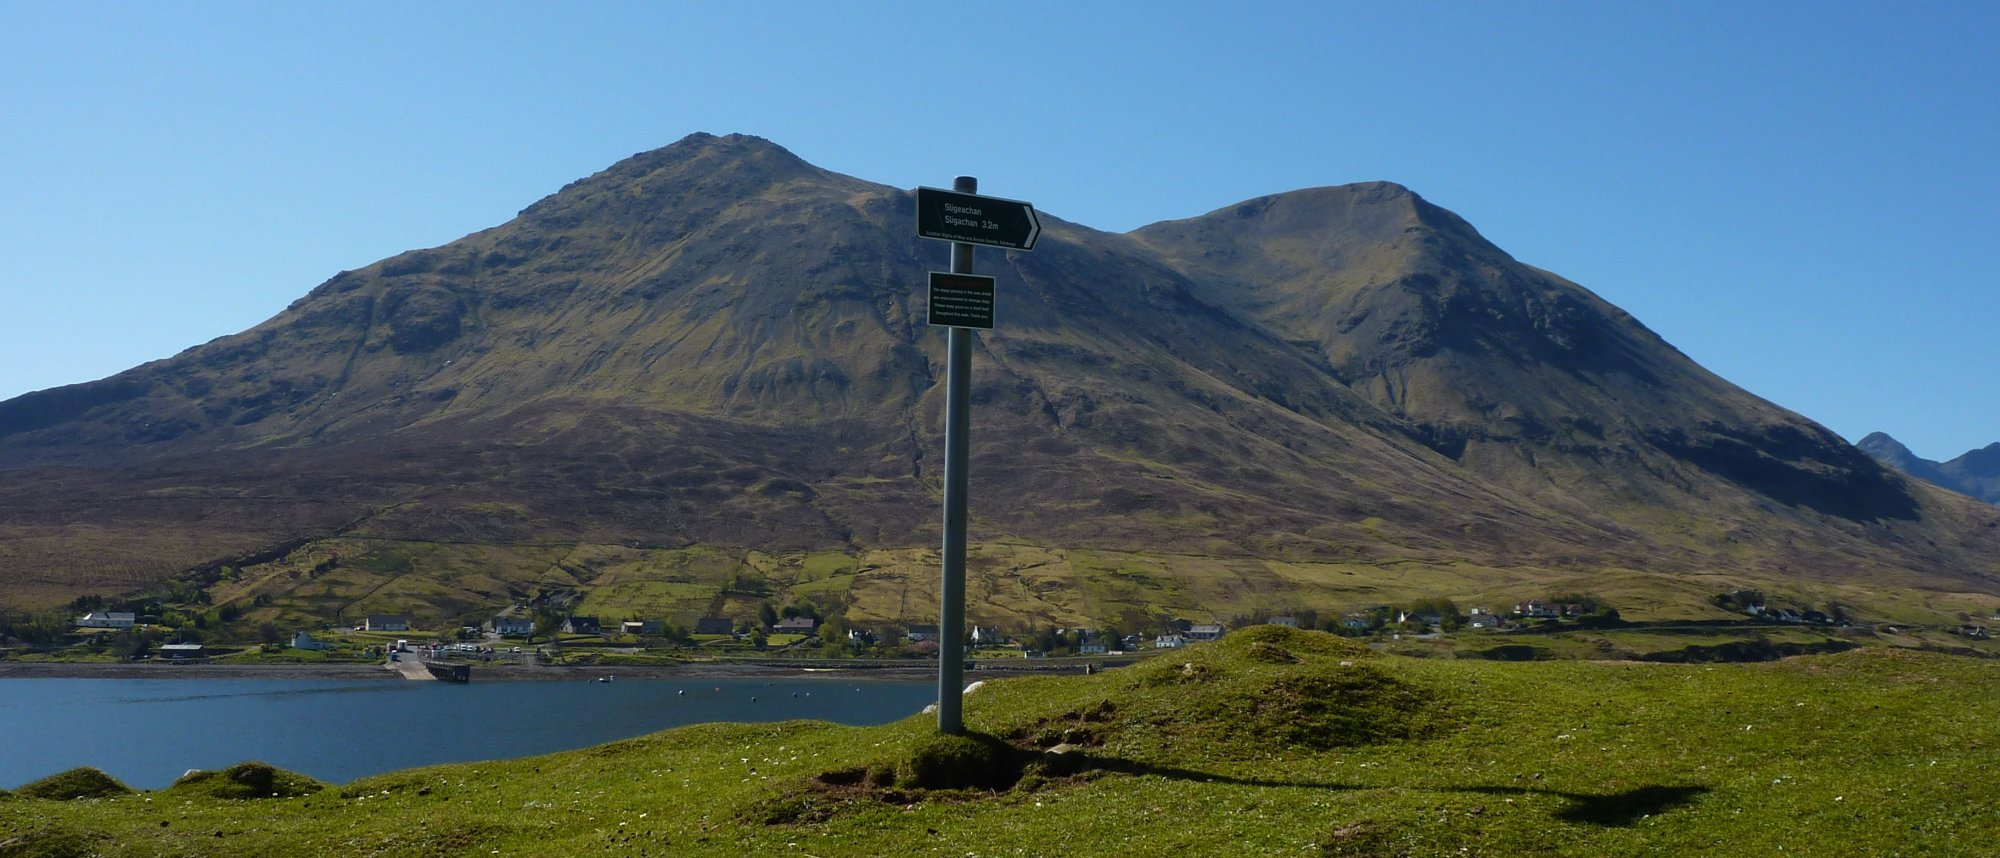 Scotways sign, pointing to Sligachan